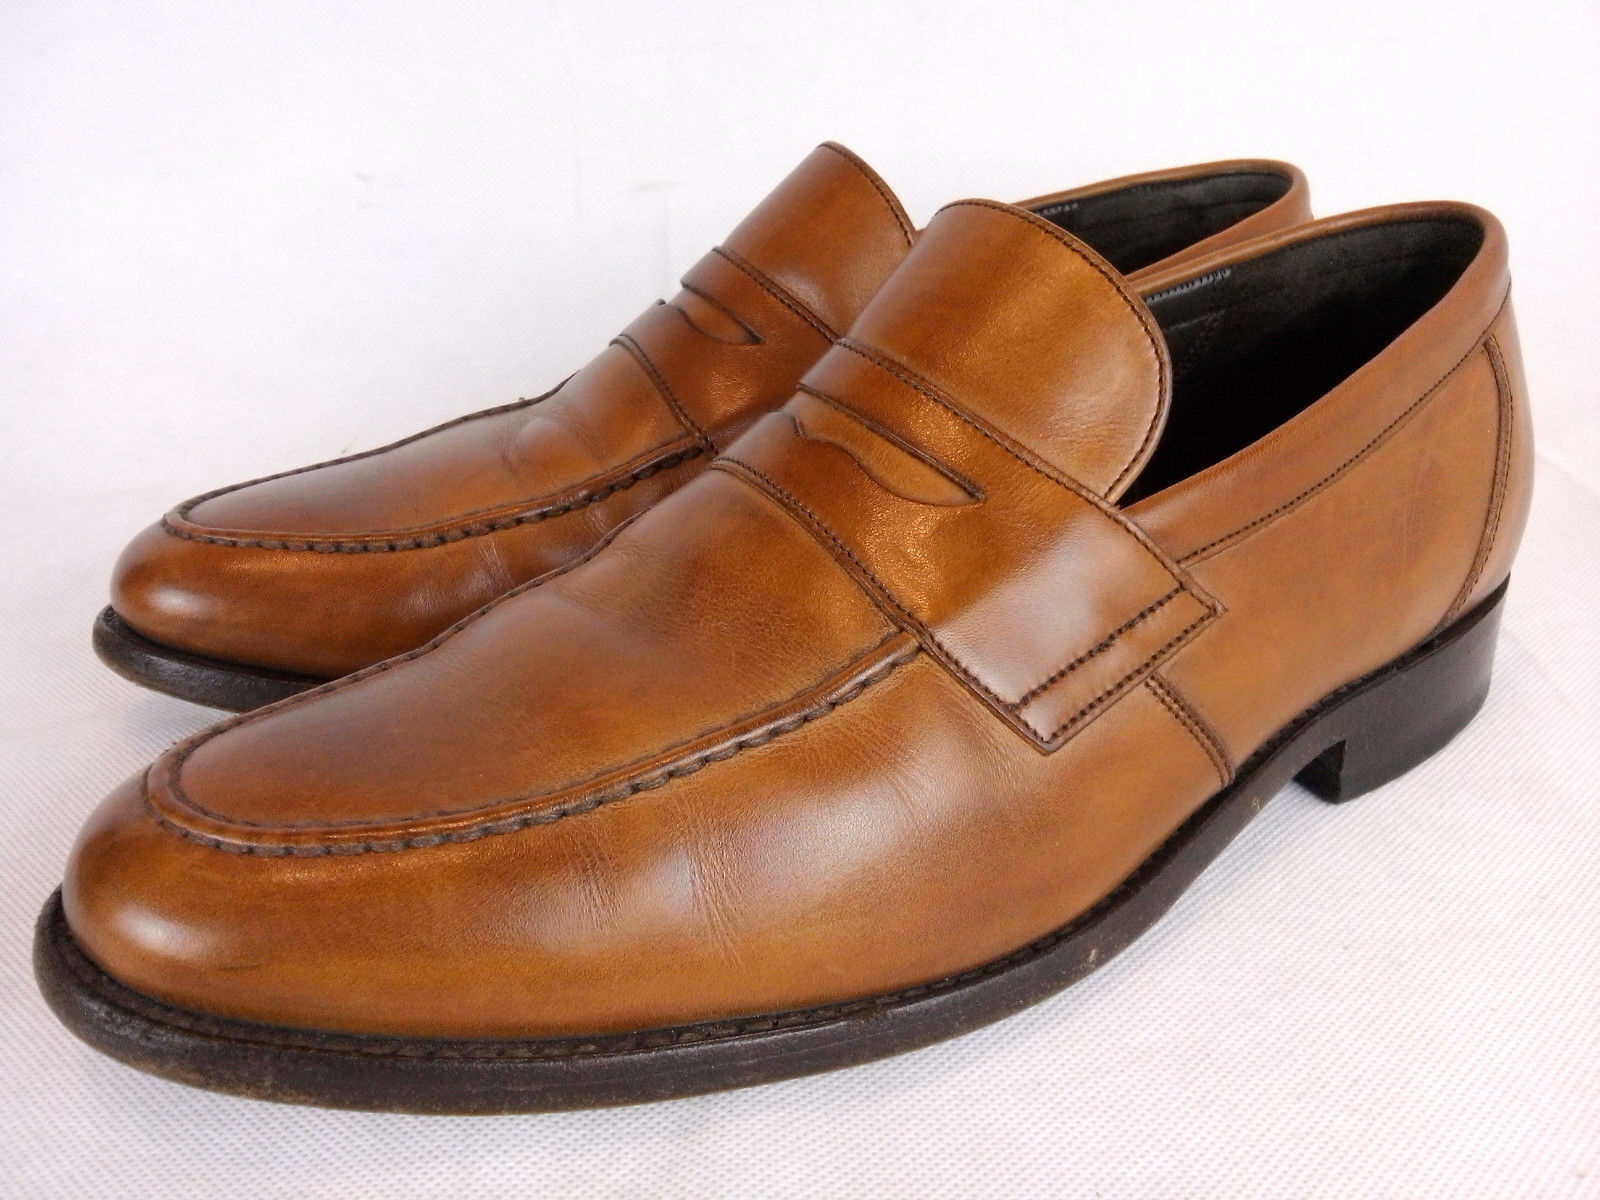 Barker England Brown Calf Leather Welted Penny Loafers Slip Ons F